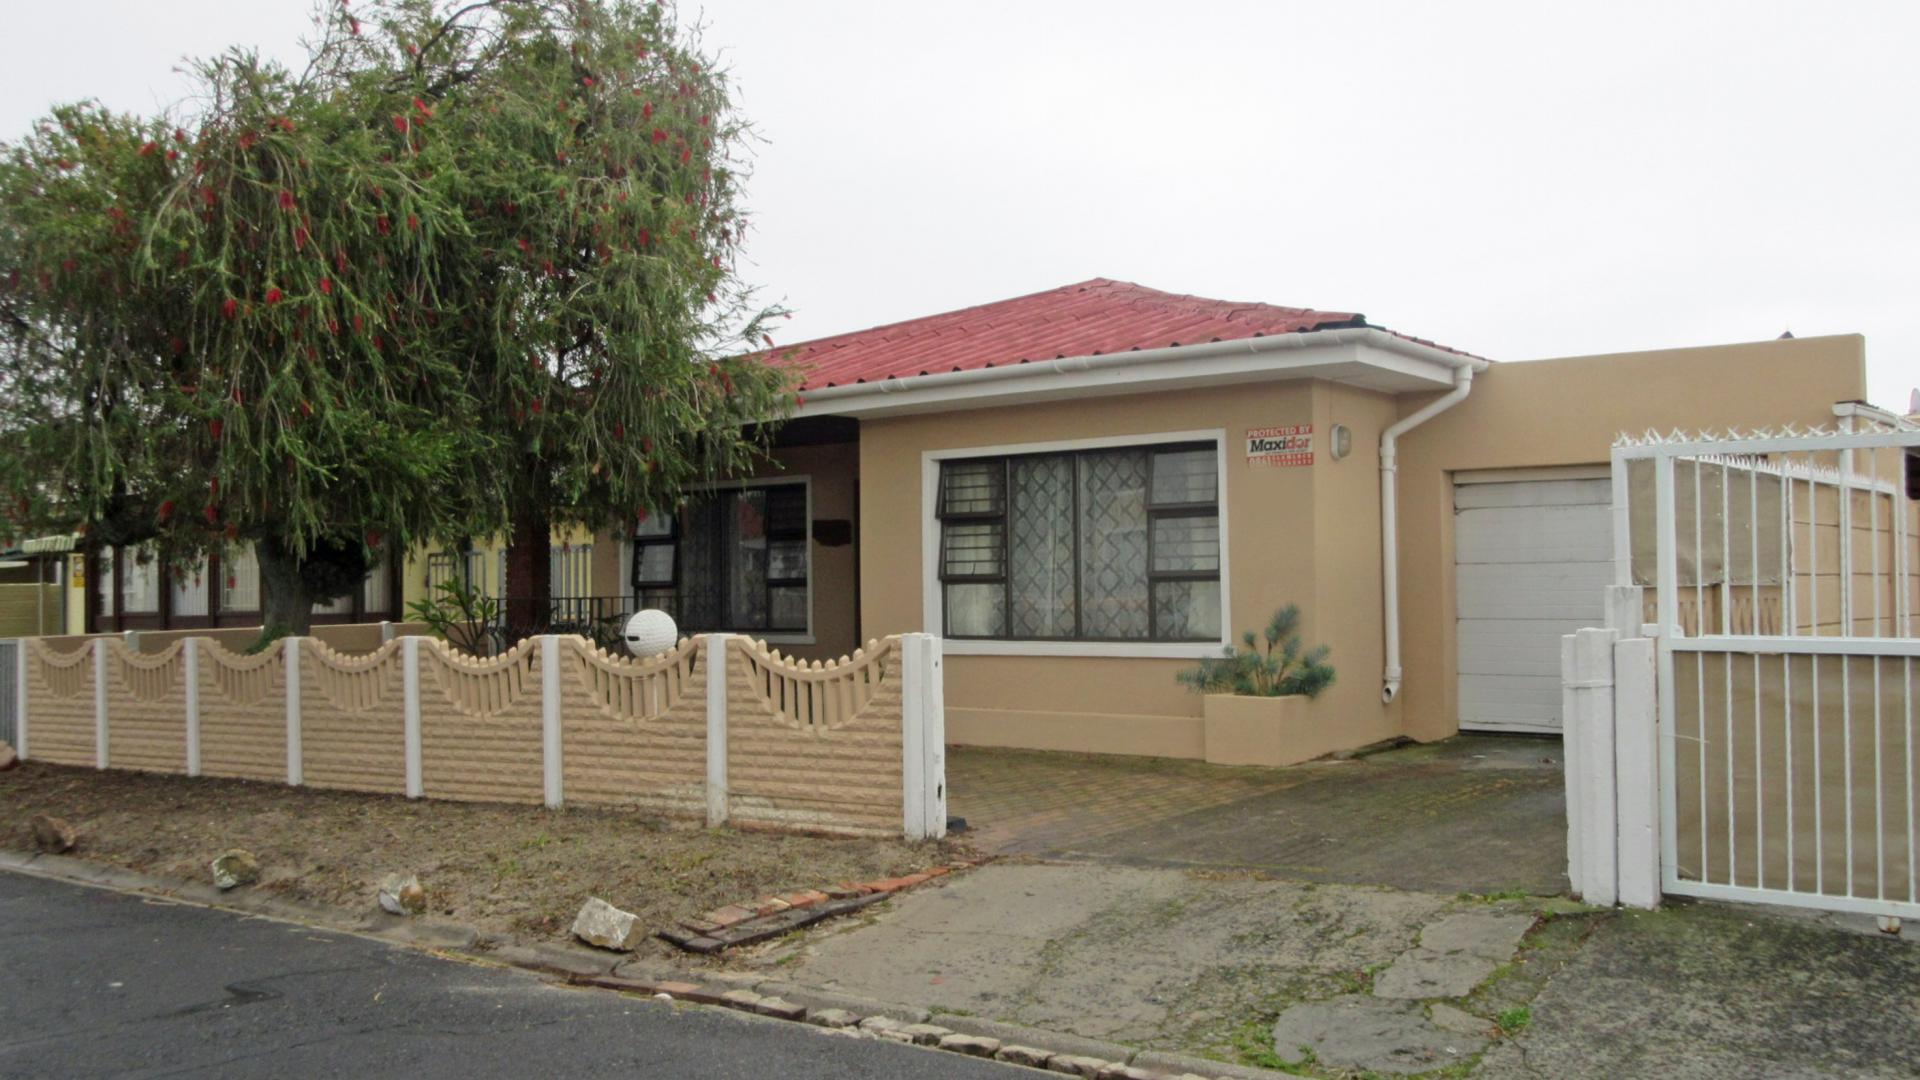 5 bedroom house for sale for sale in athlone - cpt - private sale